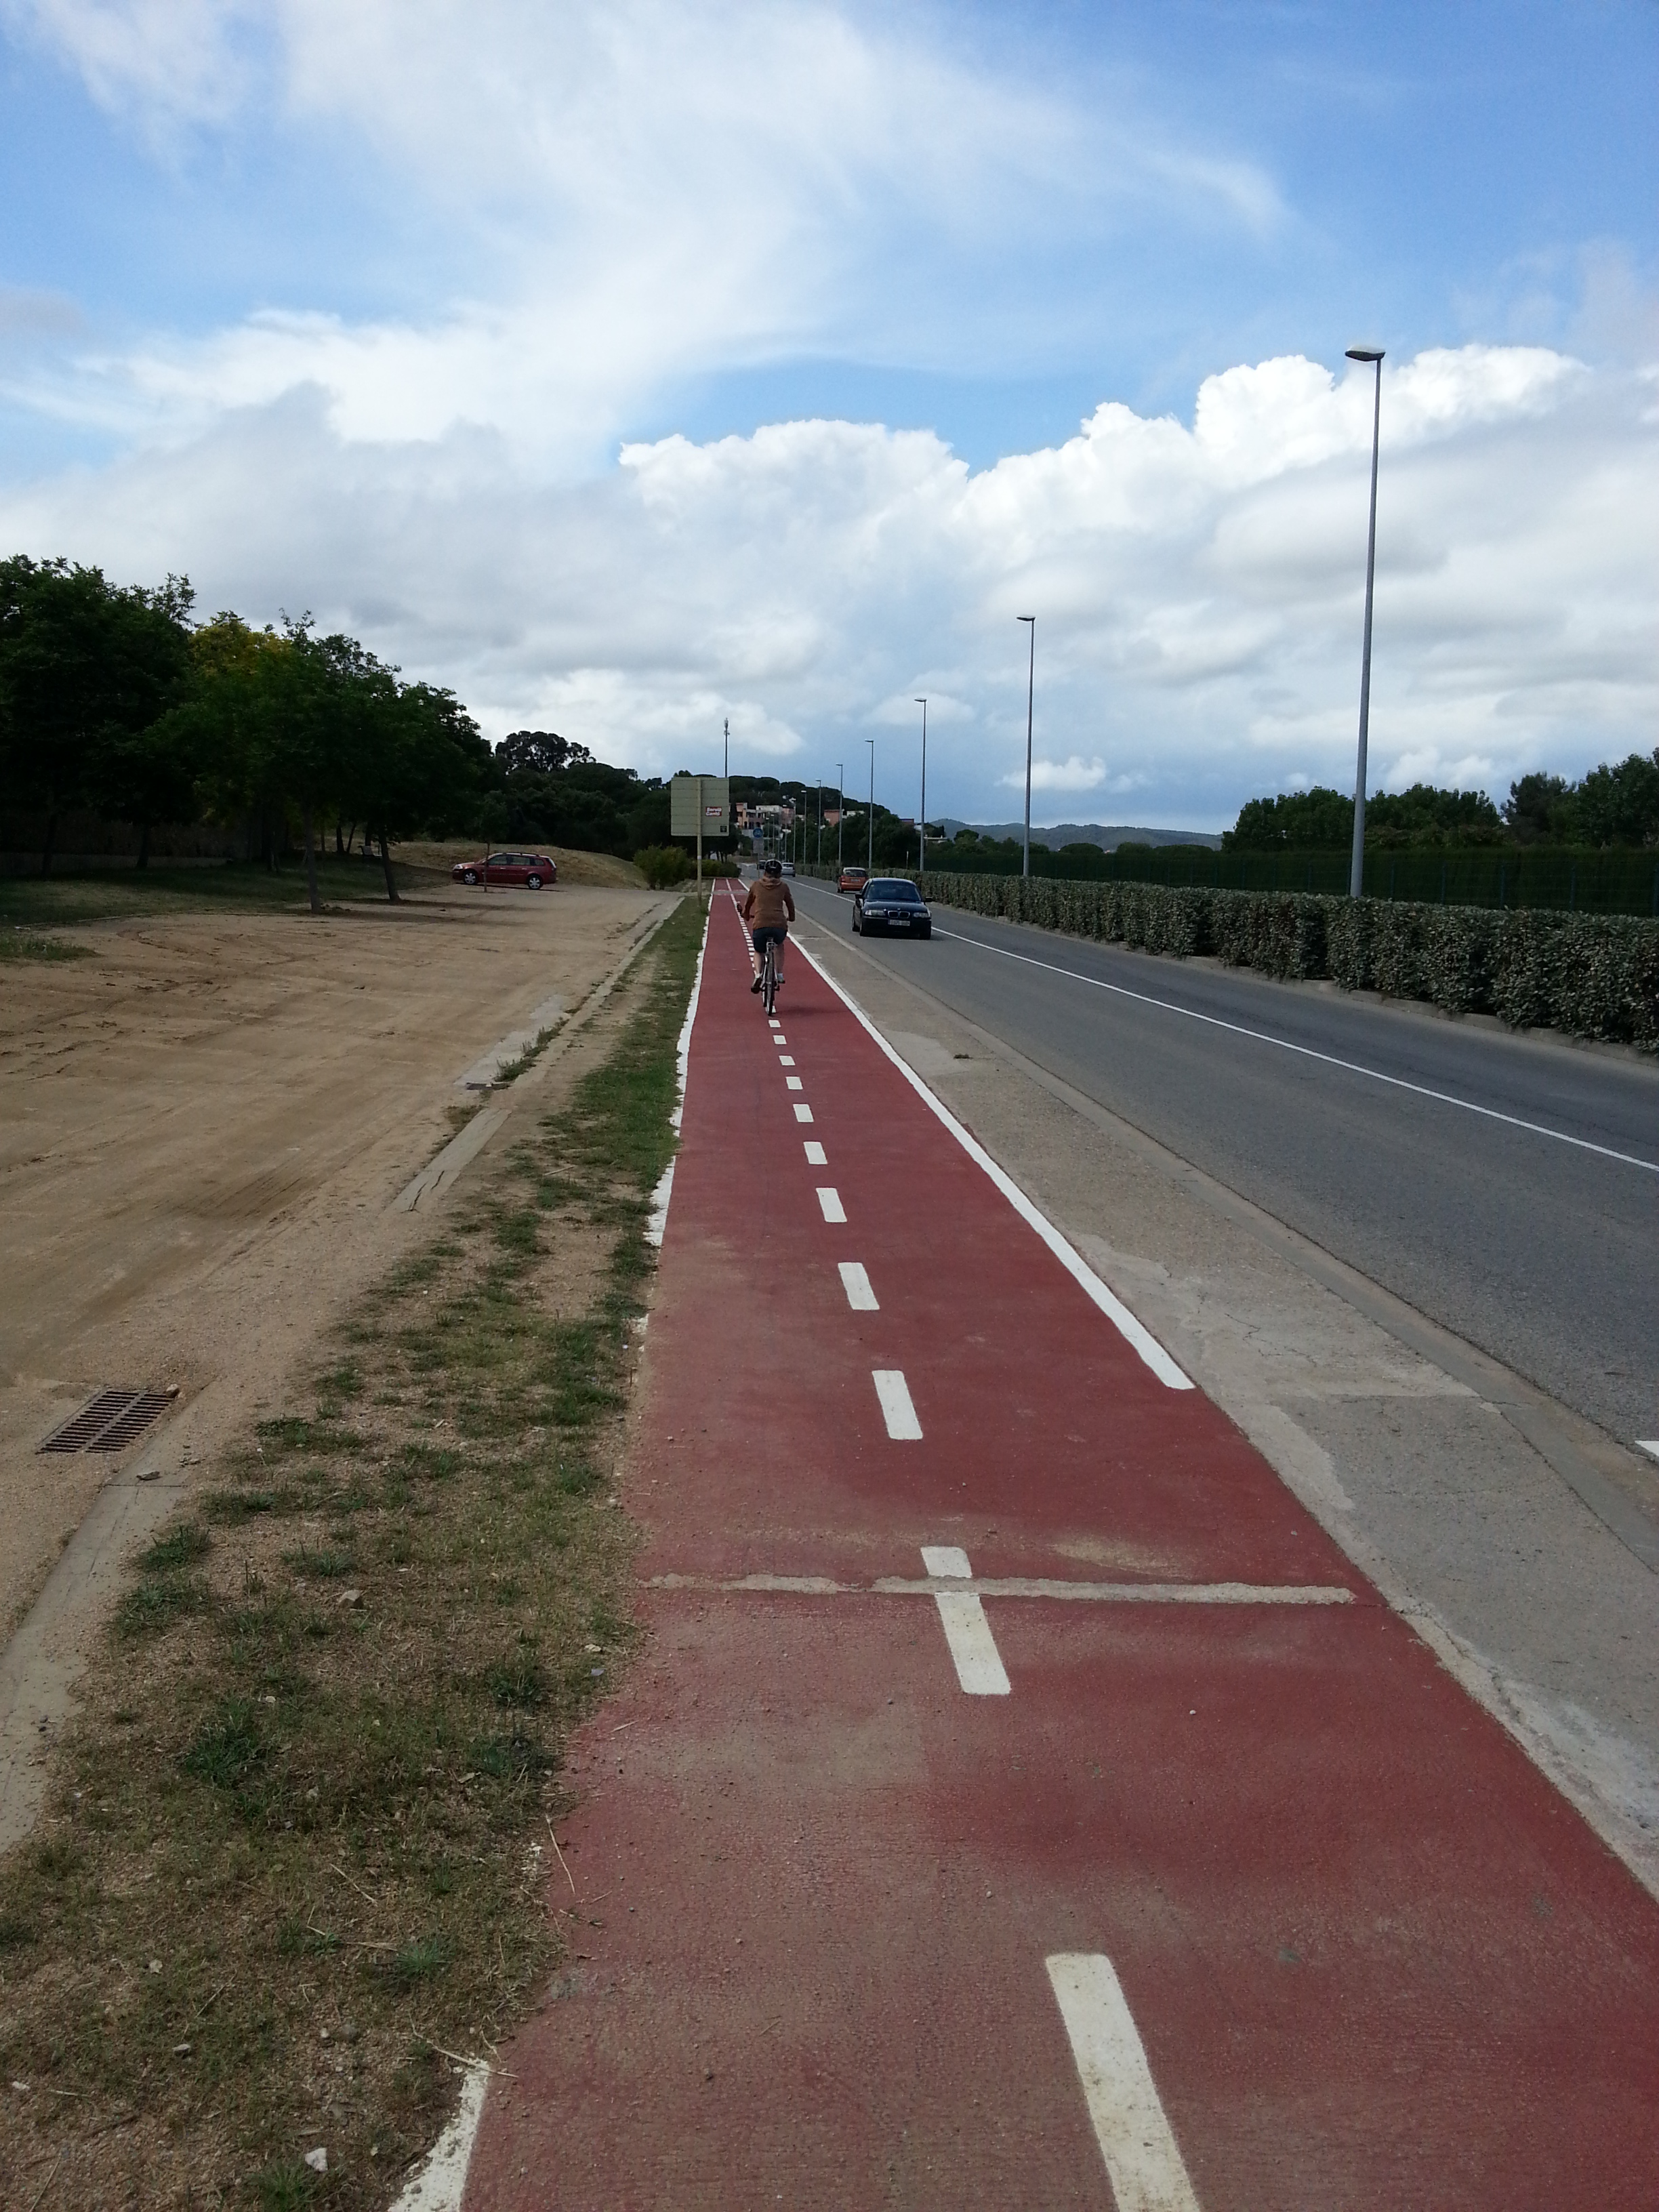 Typical Cycle way in Spain